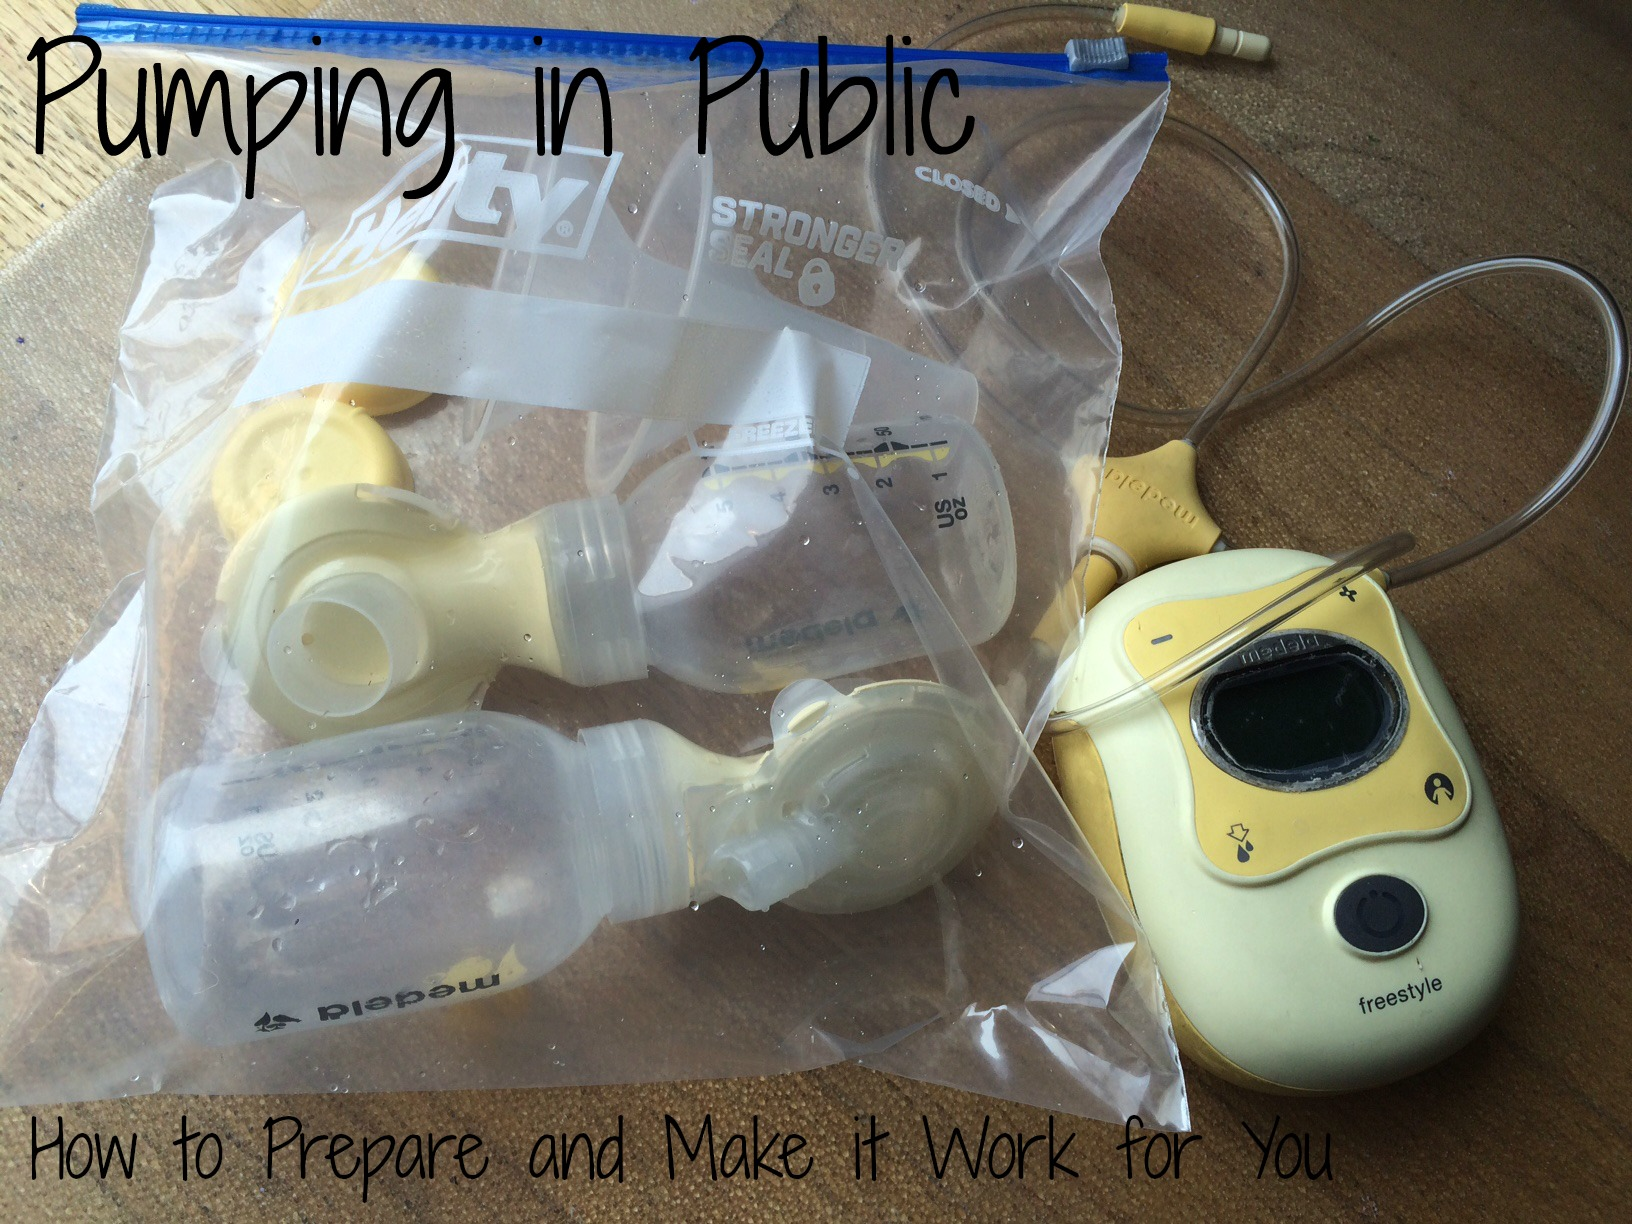 Pumping in Public: Making it Work for You